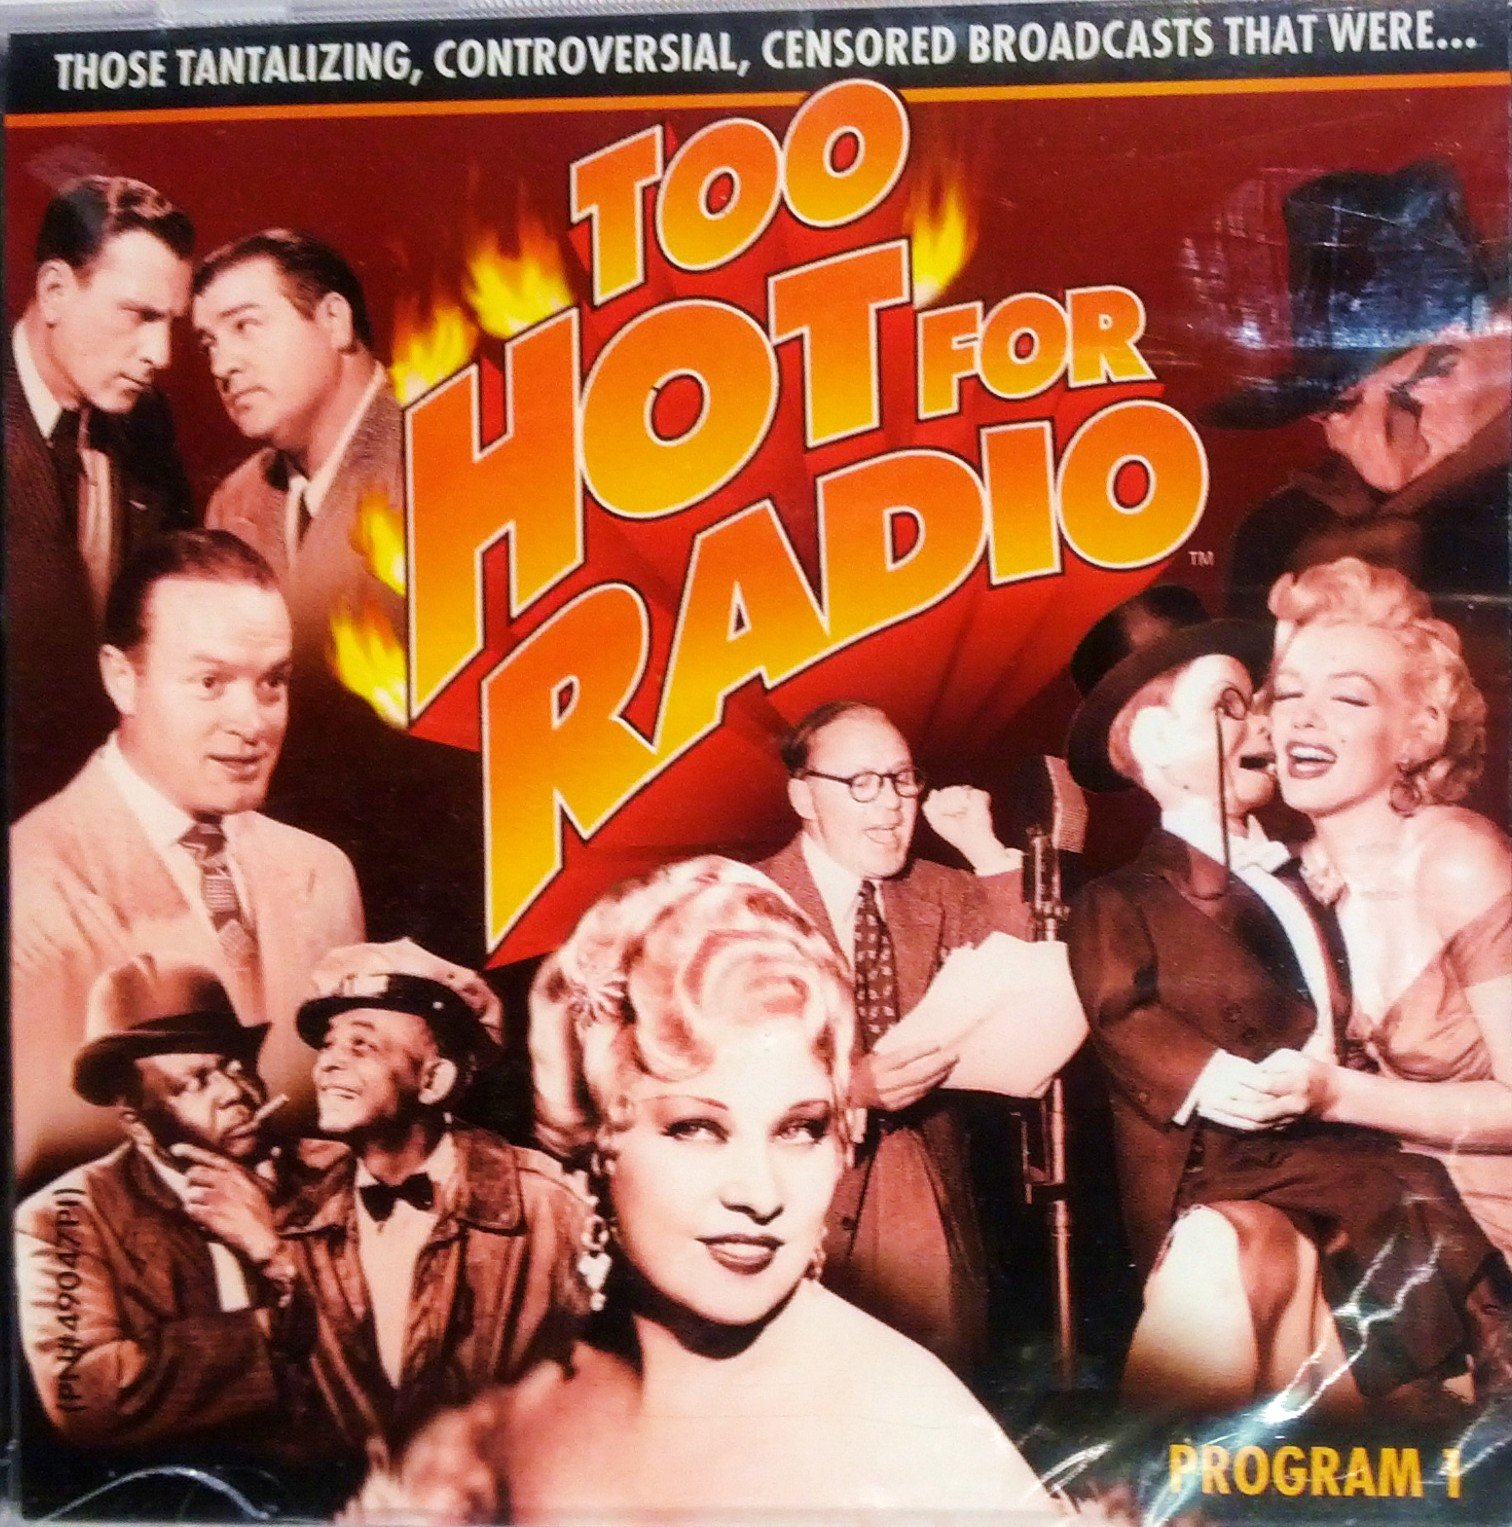 Too Hot for Radio: Program 1